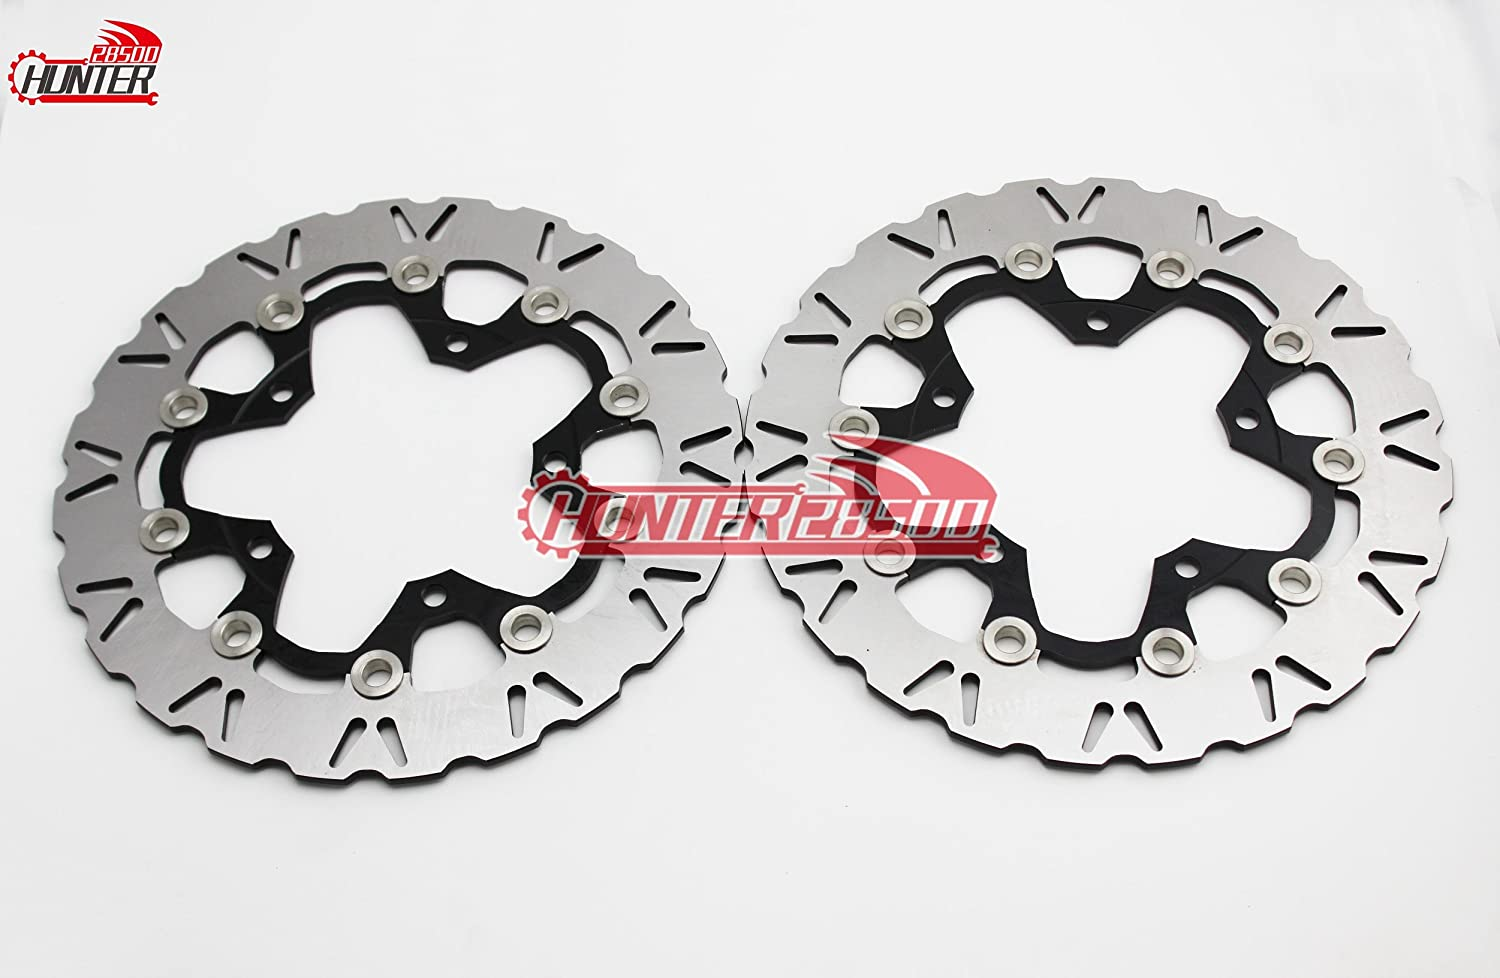 Front Brake Rotors for Suzuki Hayabusa GSX1300R B-King 2008 2009 2010 2011 2012 2013 2014 2015